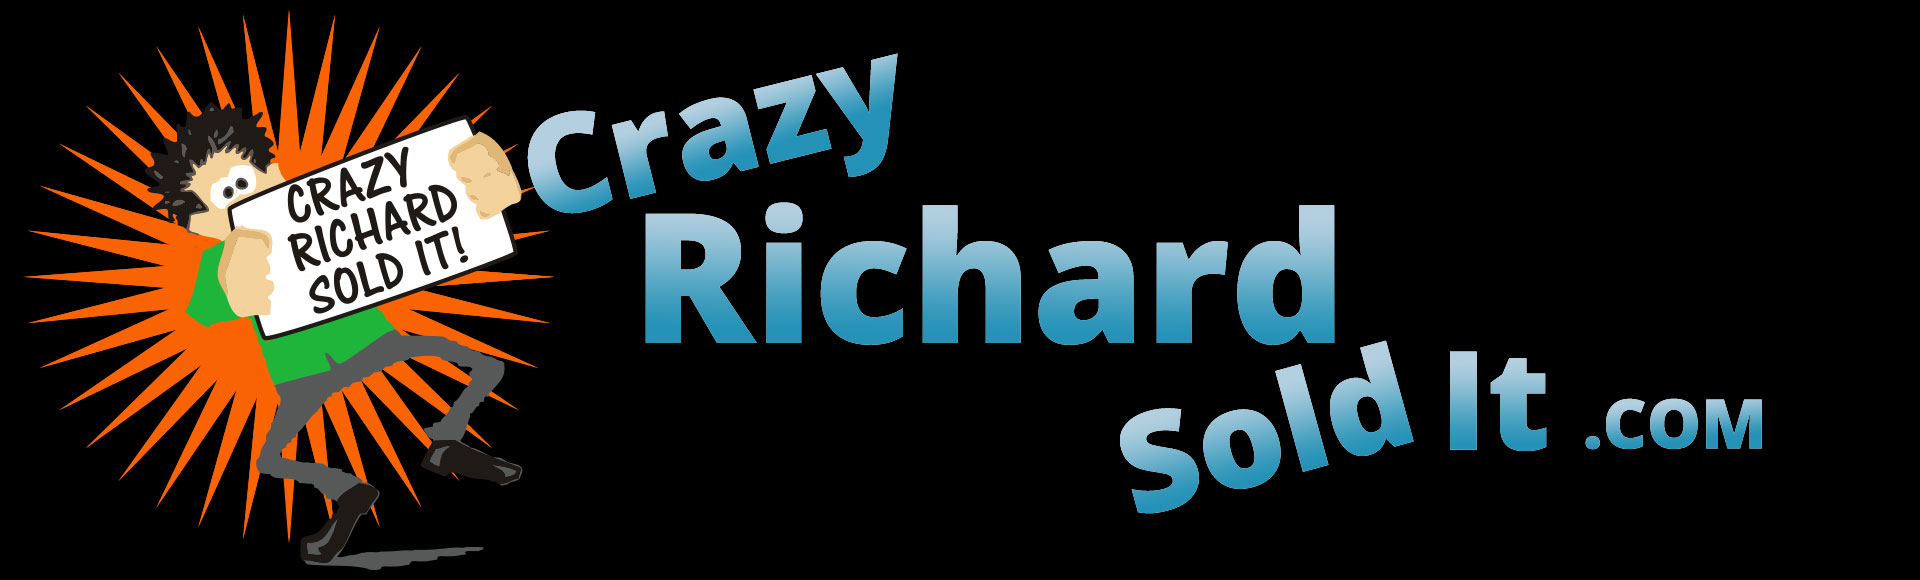 Crazy Richard Sold It - billboard